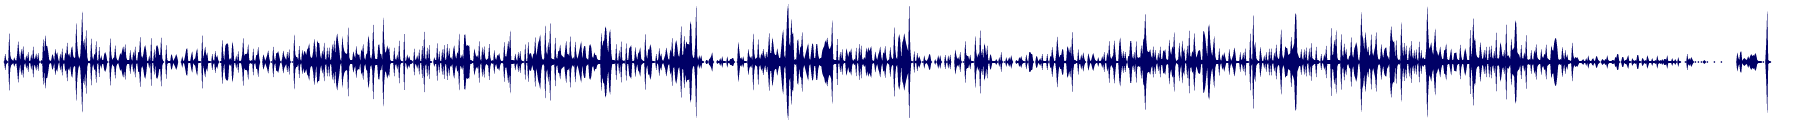 waveform of track #66419